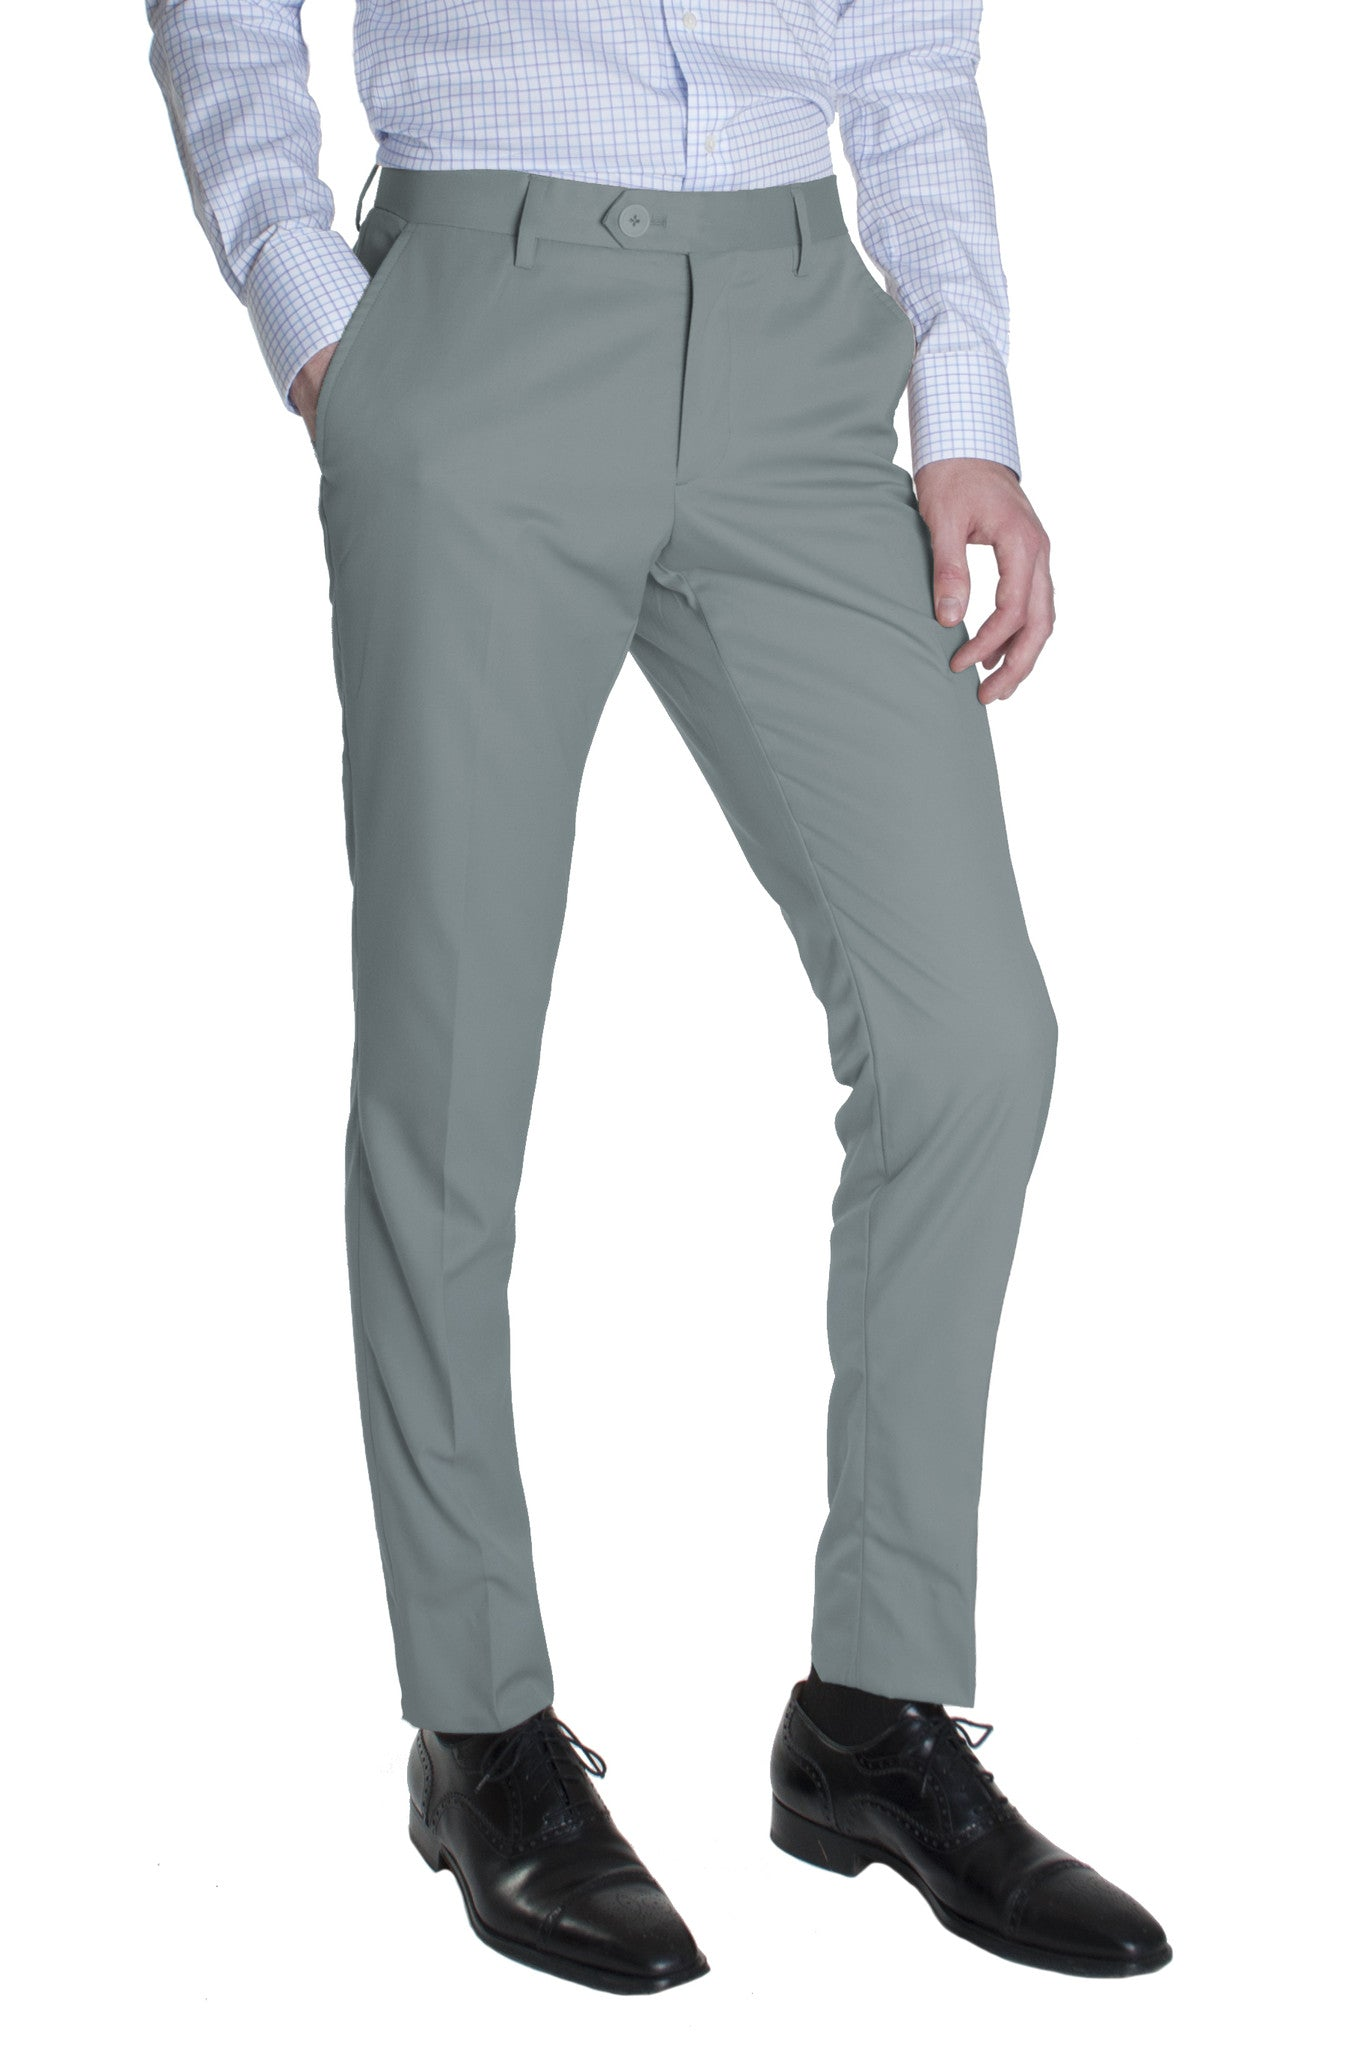 09af8b67d32 Light Grey Cotton Dress Pants